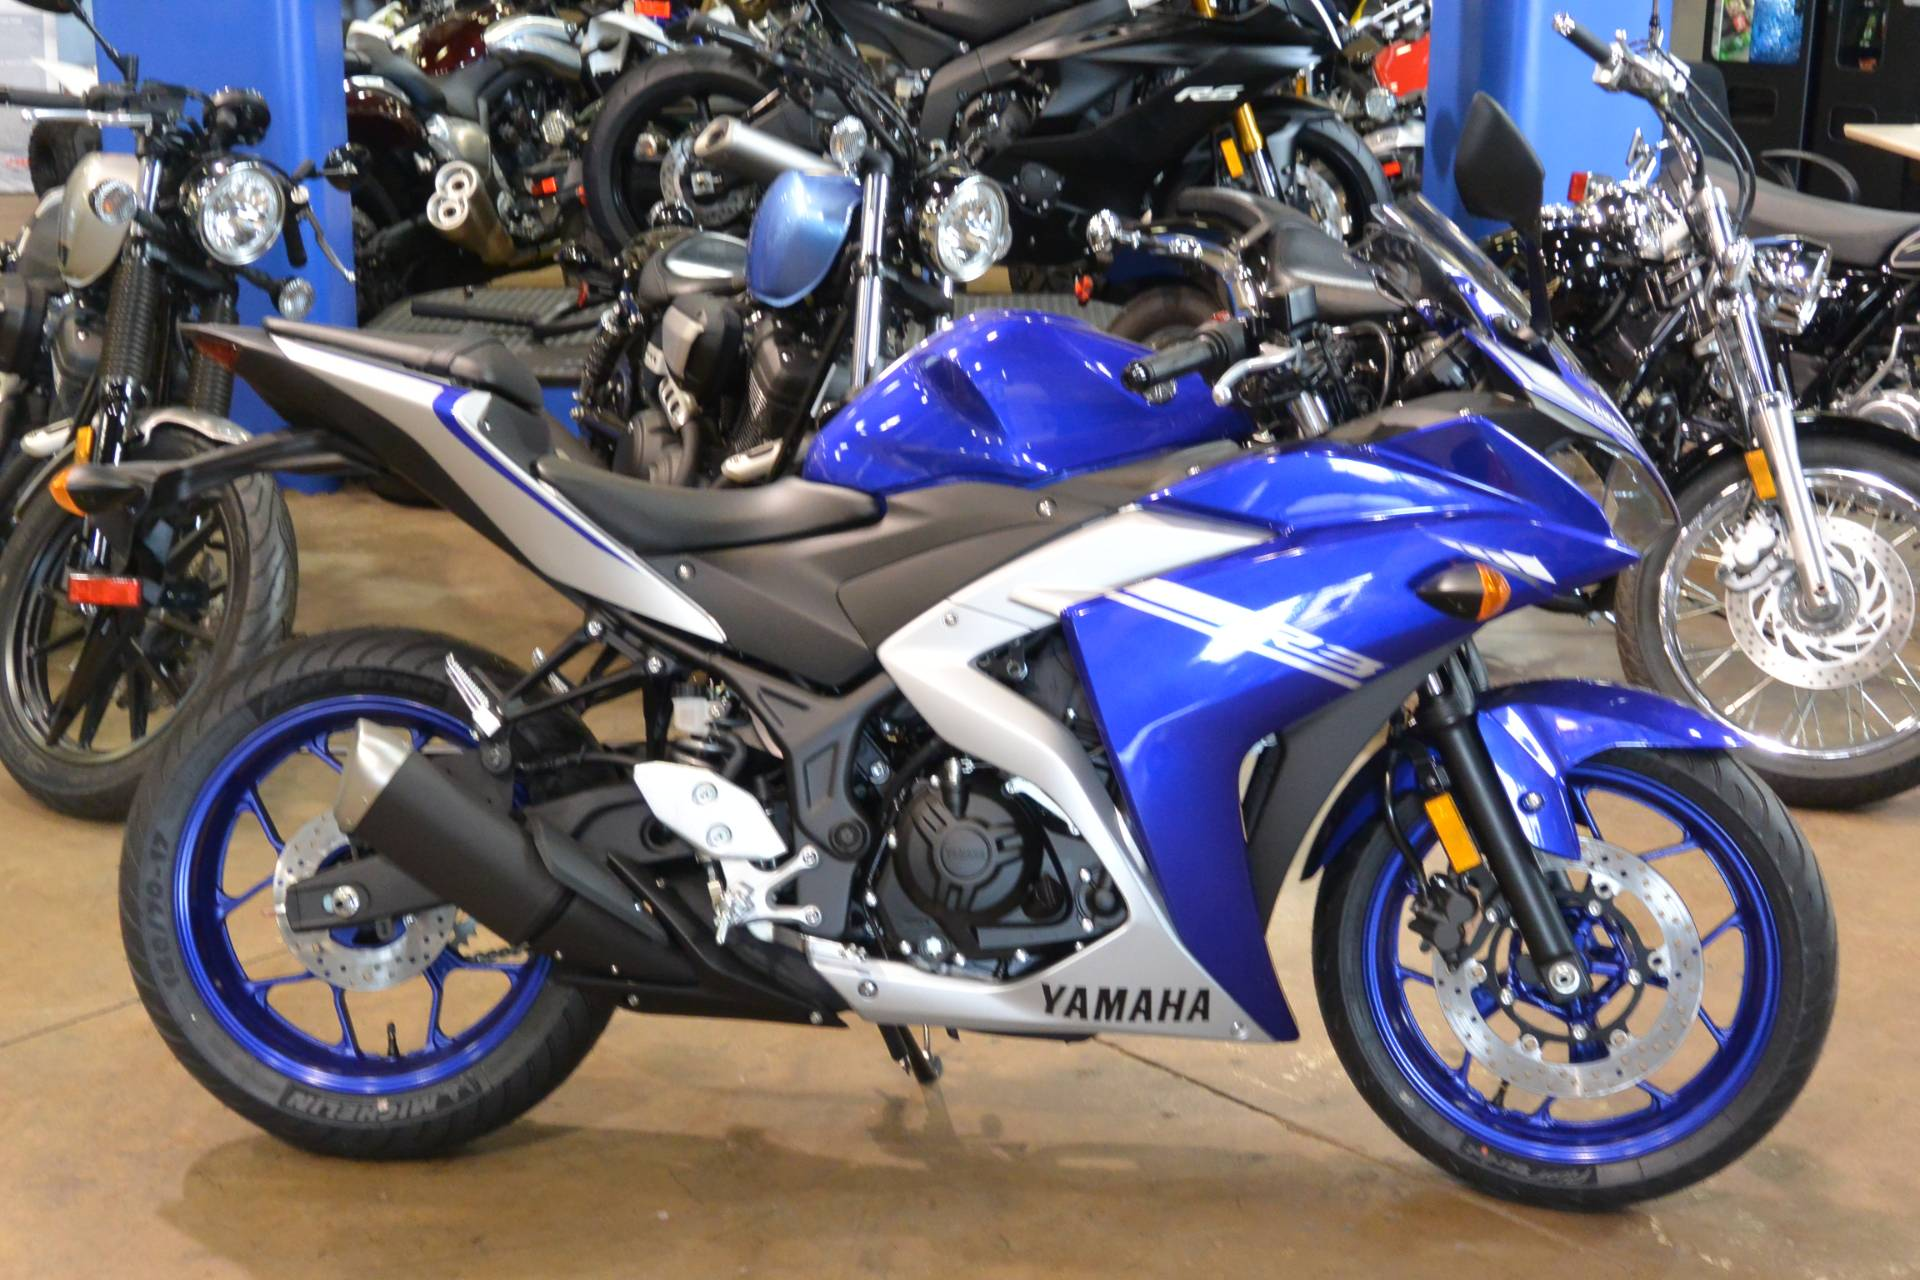 2017 Yamaha R3 in Denver, Colorado